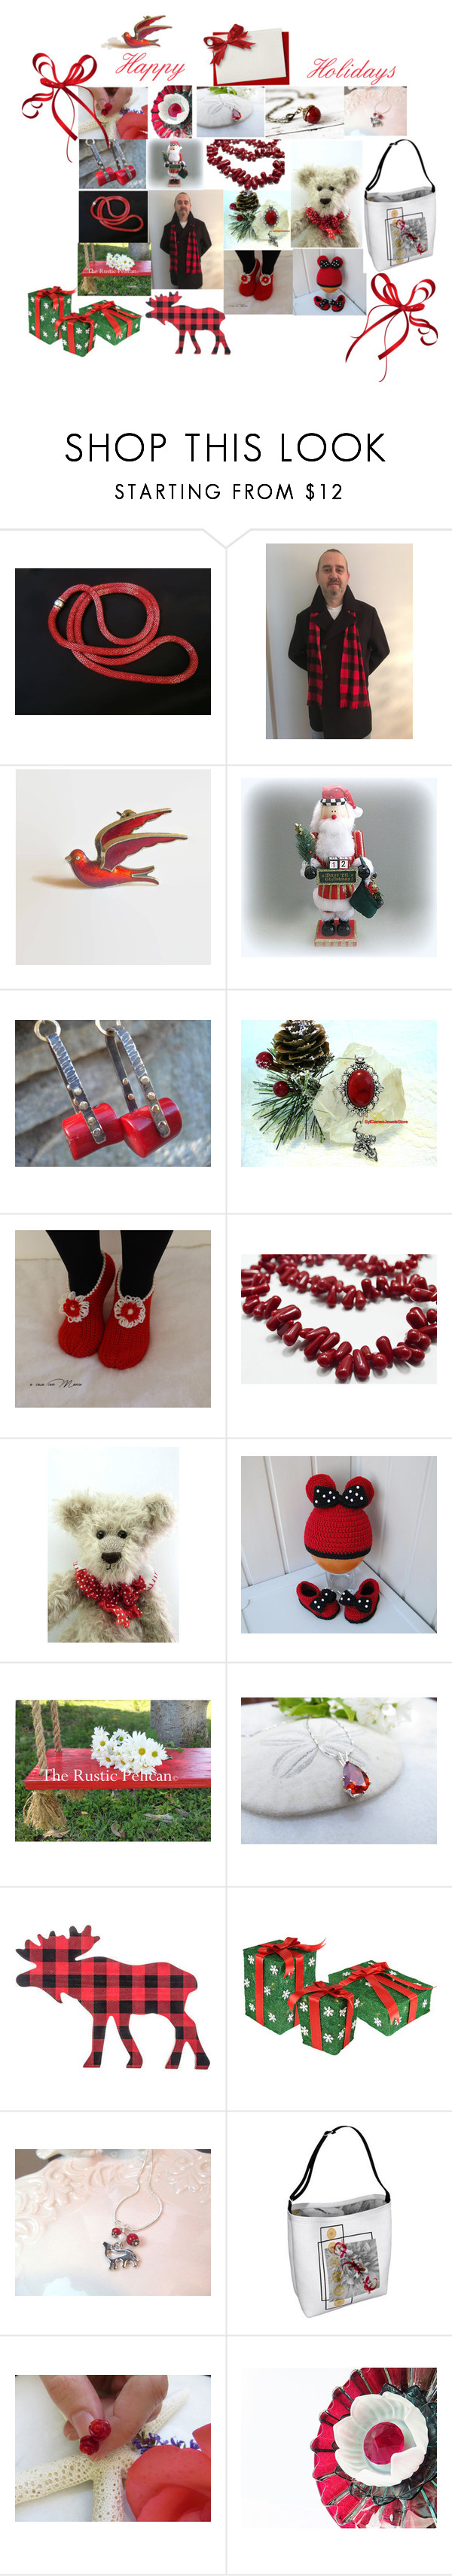 """""""Merry Christmas"""" by therusticpelican ❤ liked on Polyvore featuring Chilli Pepper, modern, contemporary, rustic and vintage"""